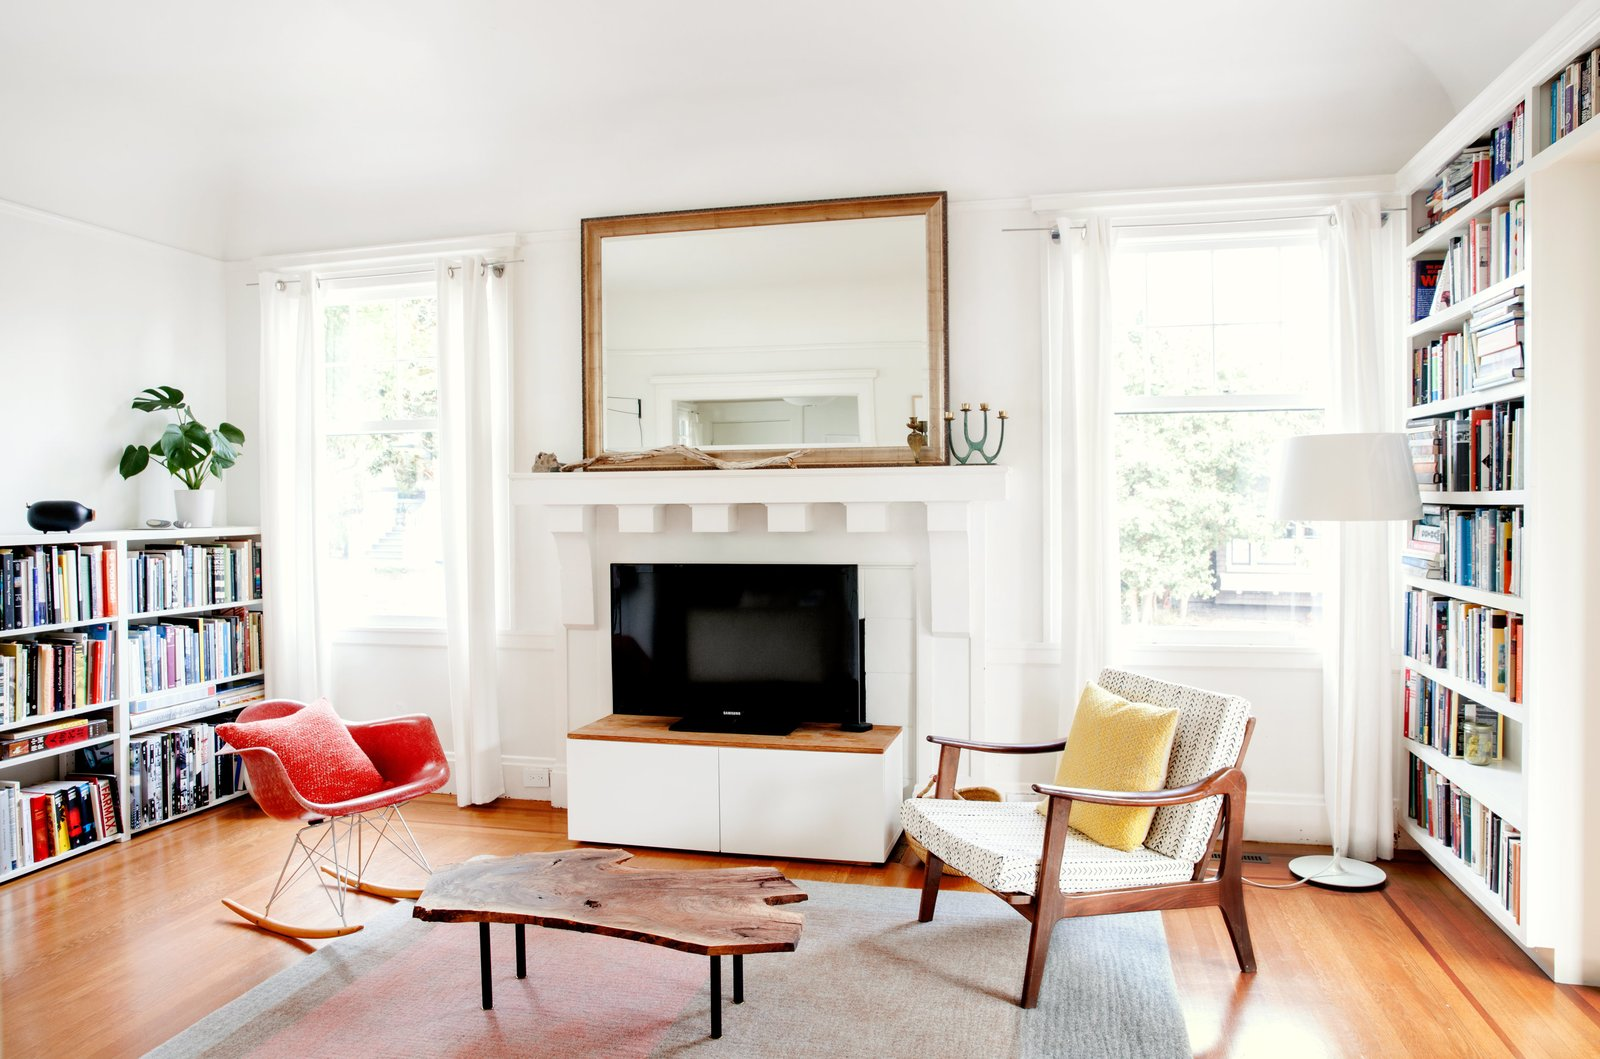 Living Room, Chair, Coffee Tables, Standard Layout Fireplace, Medium Hardwood Floor, Floor Lighting, Rug Floor, Bookcase, and Lamps focusing attention on an Eames rocker, a rug by Peace Industry, and a live-edge coffee table by Cheng+Snyder. TKTKTKTK  Photo 8 of 15 in Check Back